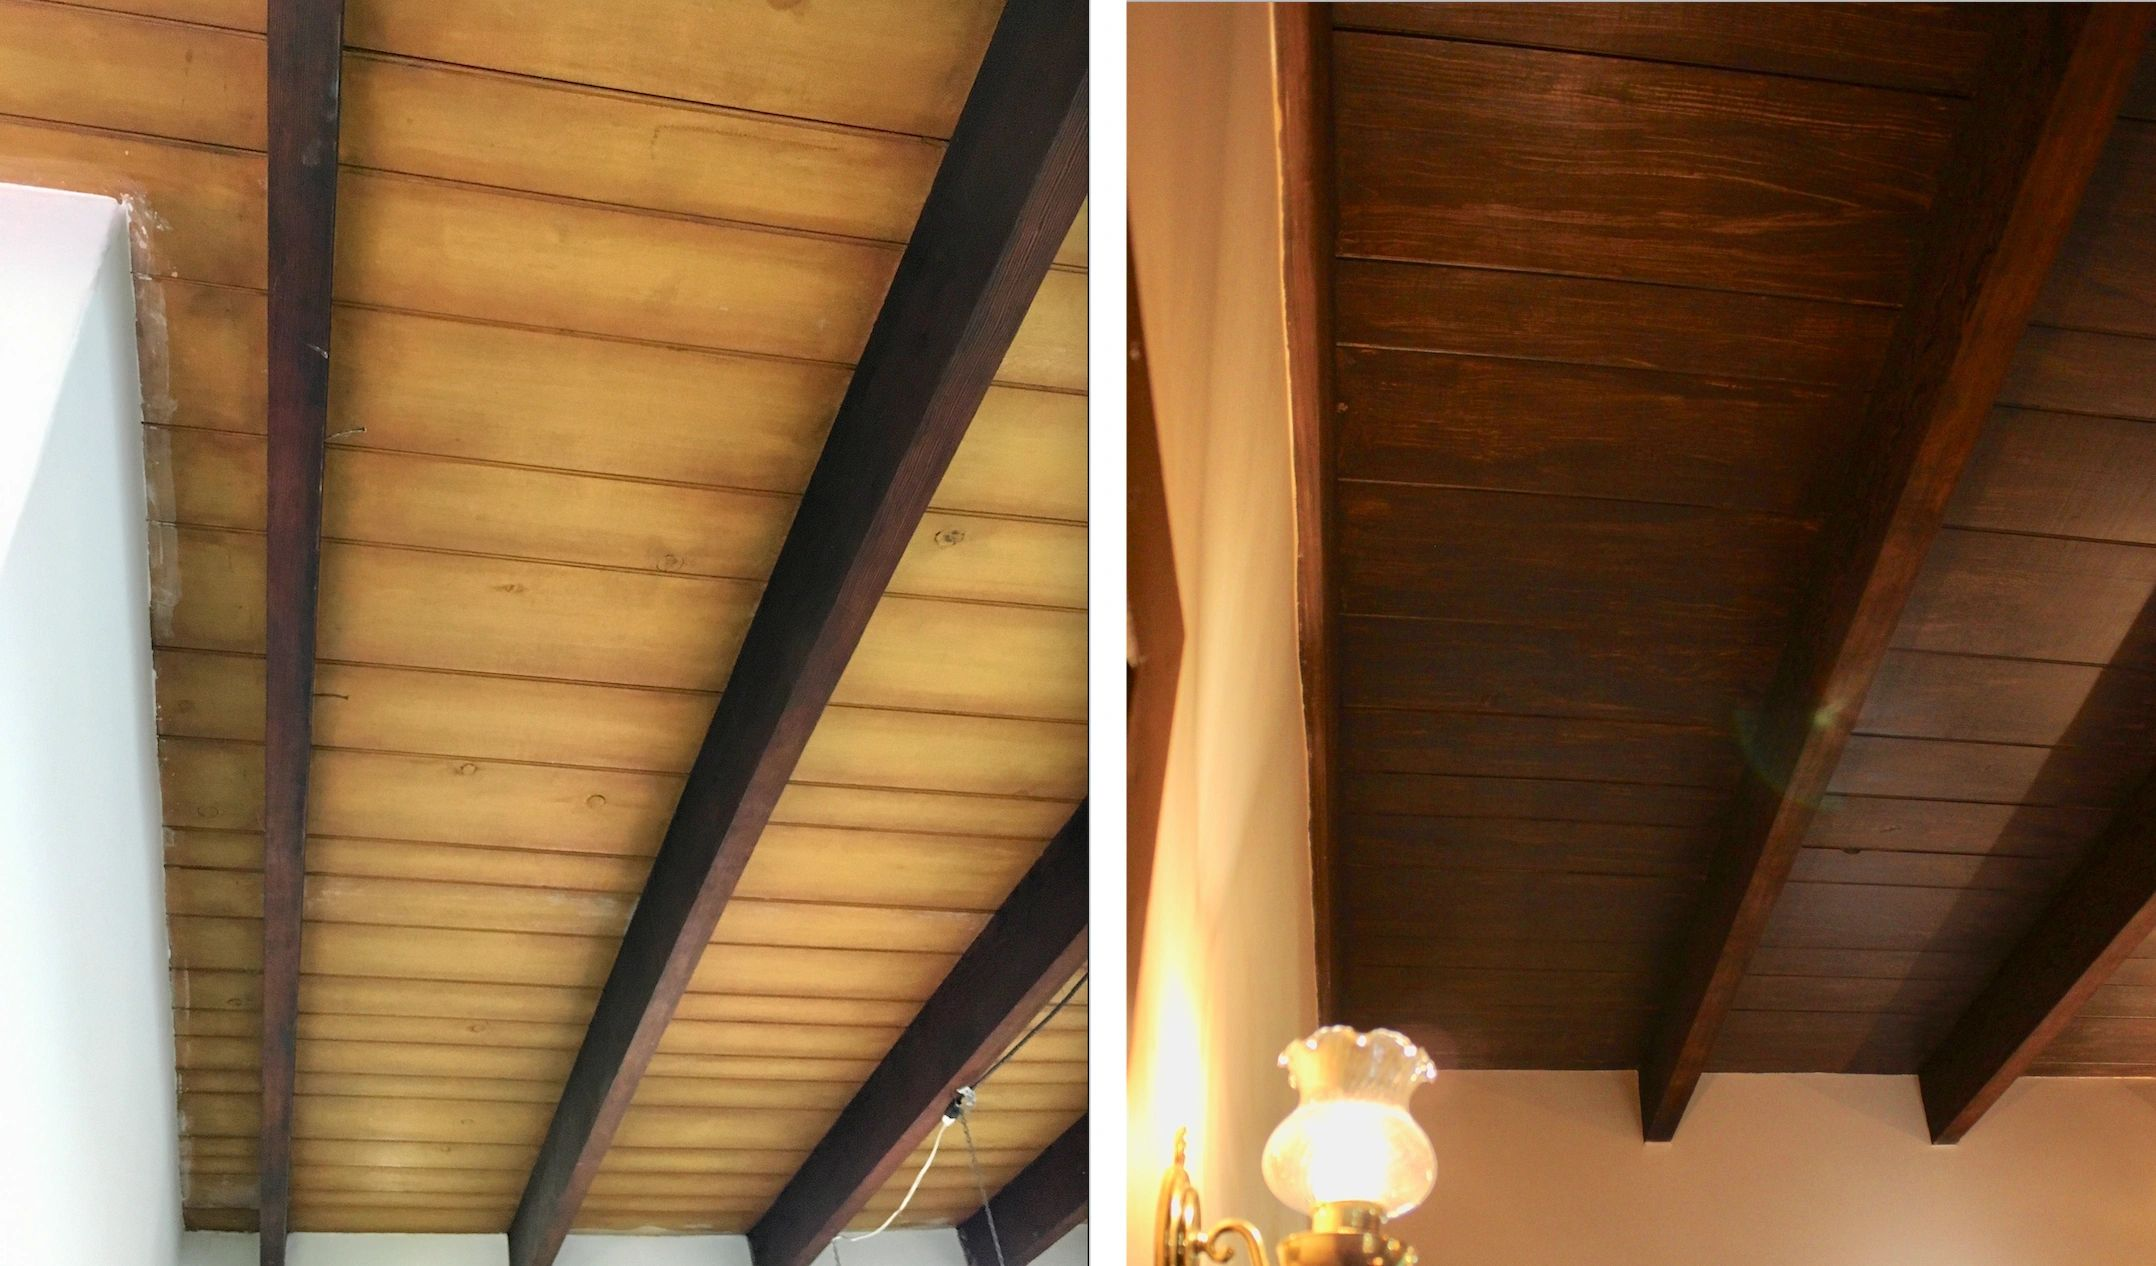 "{""blocks"":[{""key"":""3sk28"",""text"":""Faux finish painting (right) over 1960's ochre paint treatment to make beams look stained as they were originally."",""type"":""unstyled"",""depth"":0,""inlineStyleRanges"":[{""offset"":21,""length"":7,""style"":""ITALIC""}],""entityRanges"":[],""data"":{}}],""entityMap"":{}}"